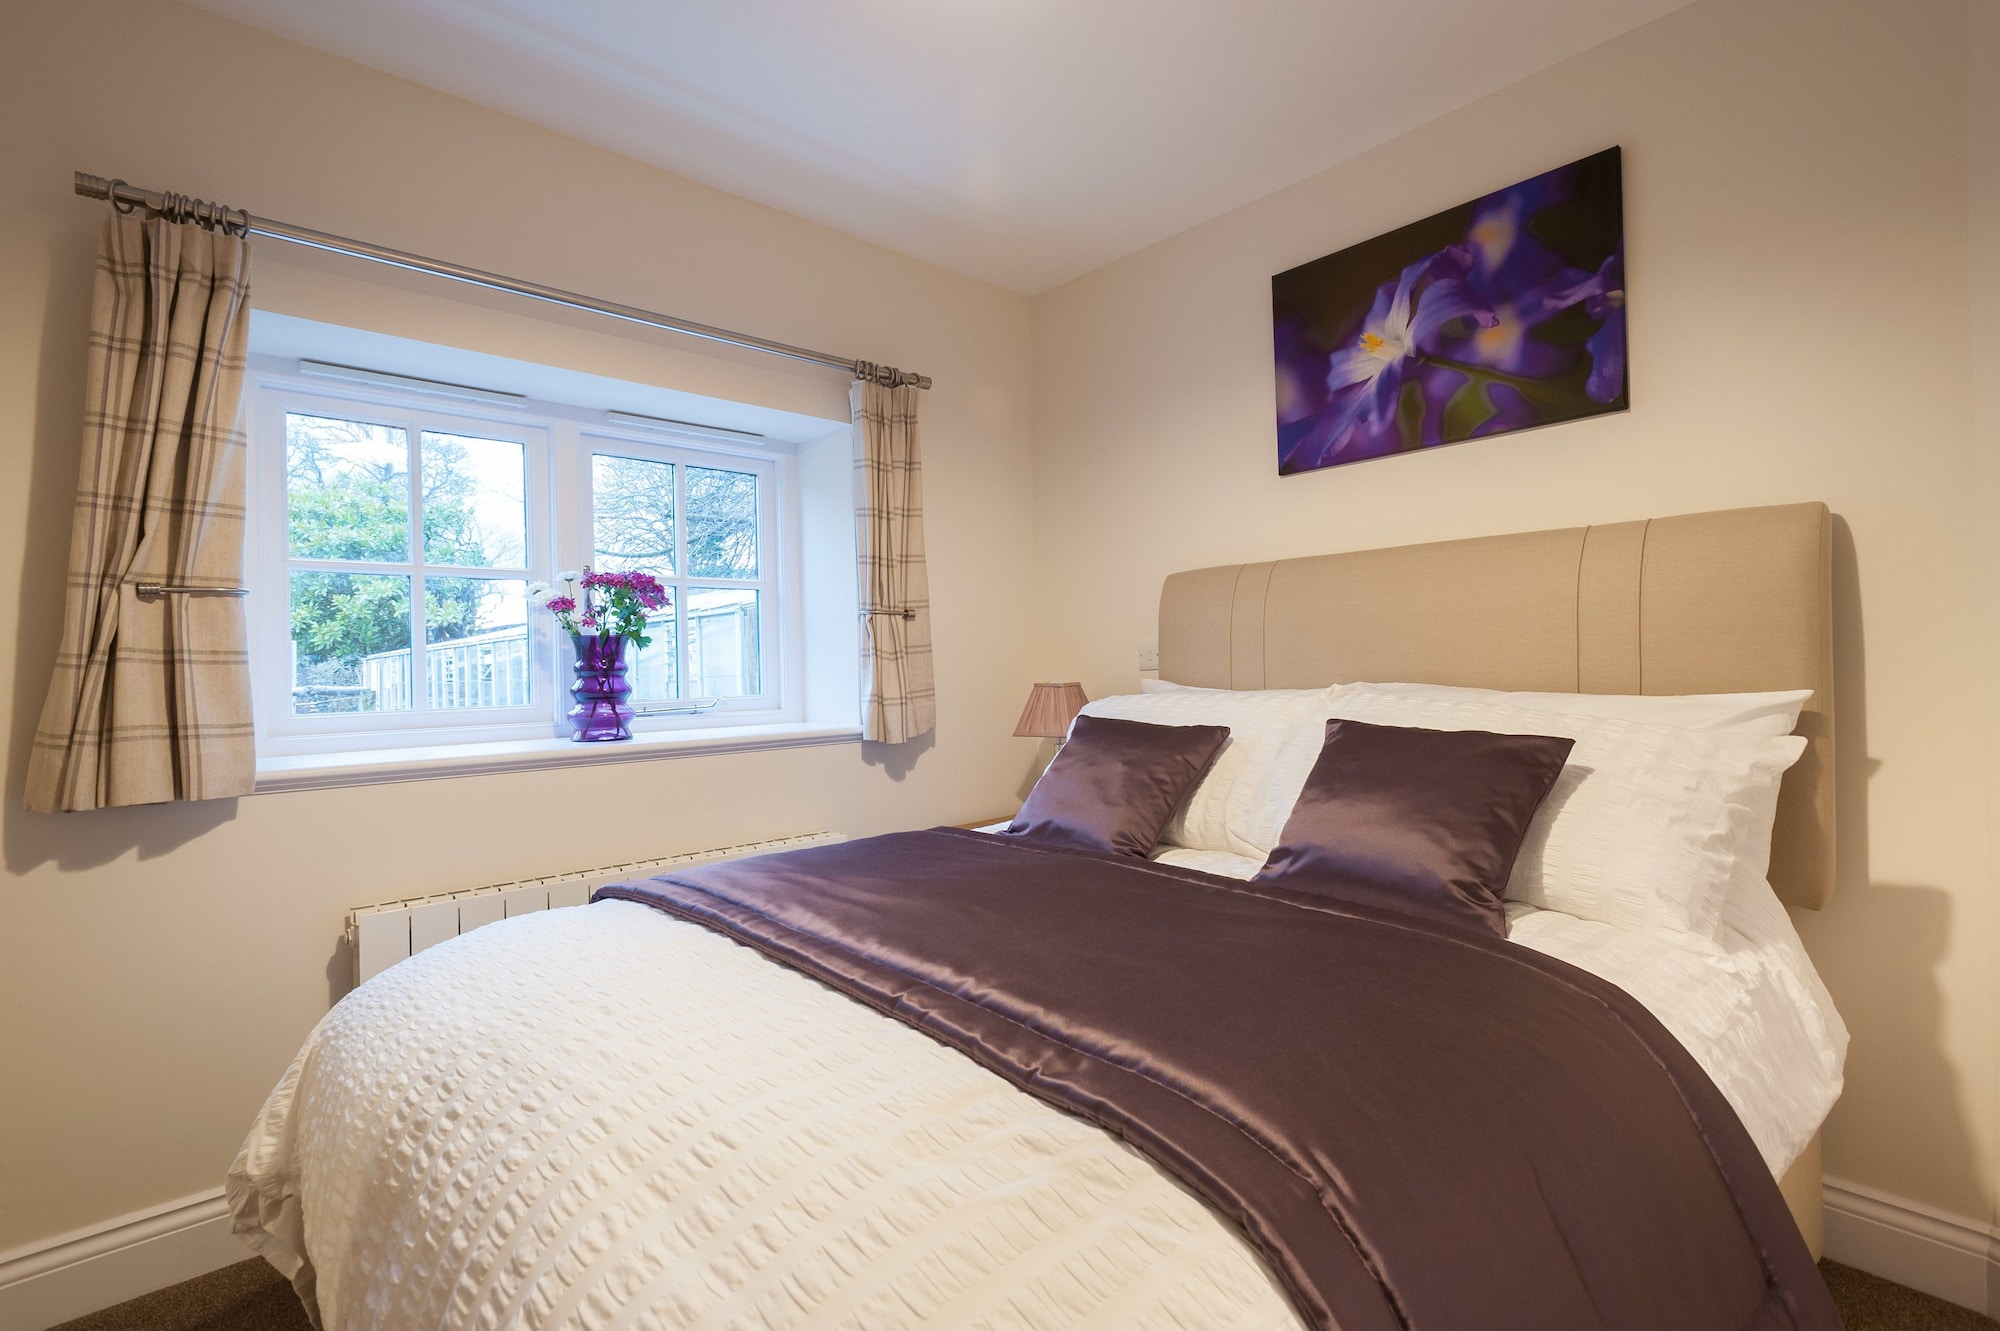 Milntown Self Catering Apartments, Lezayre